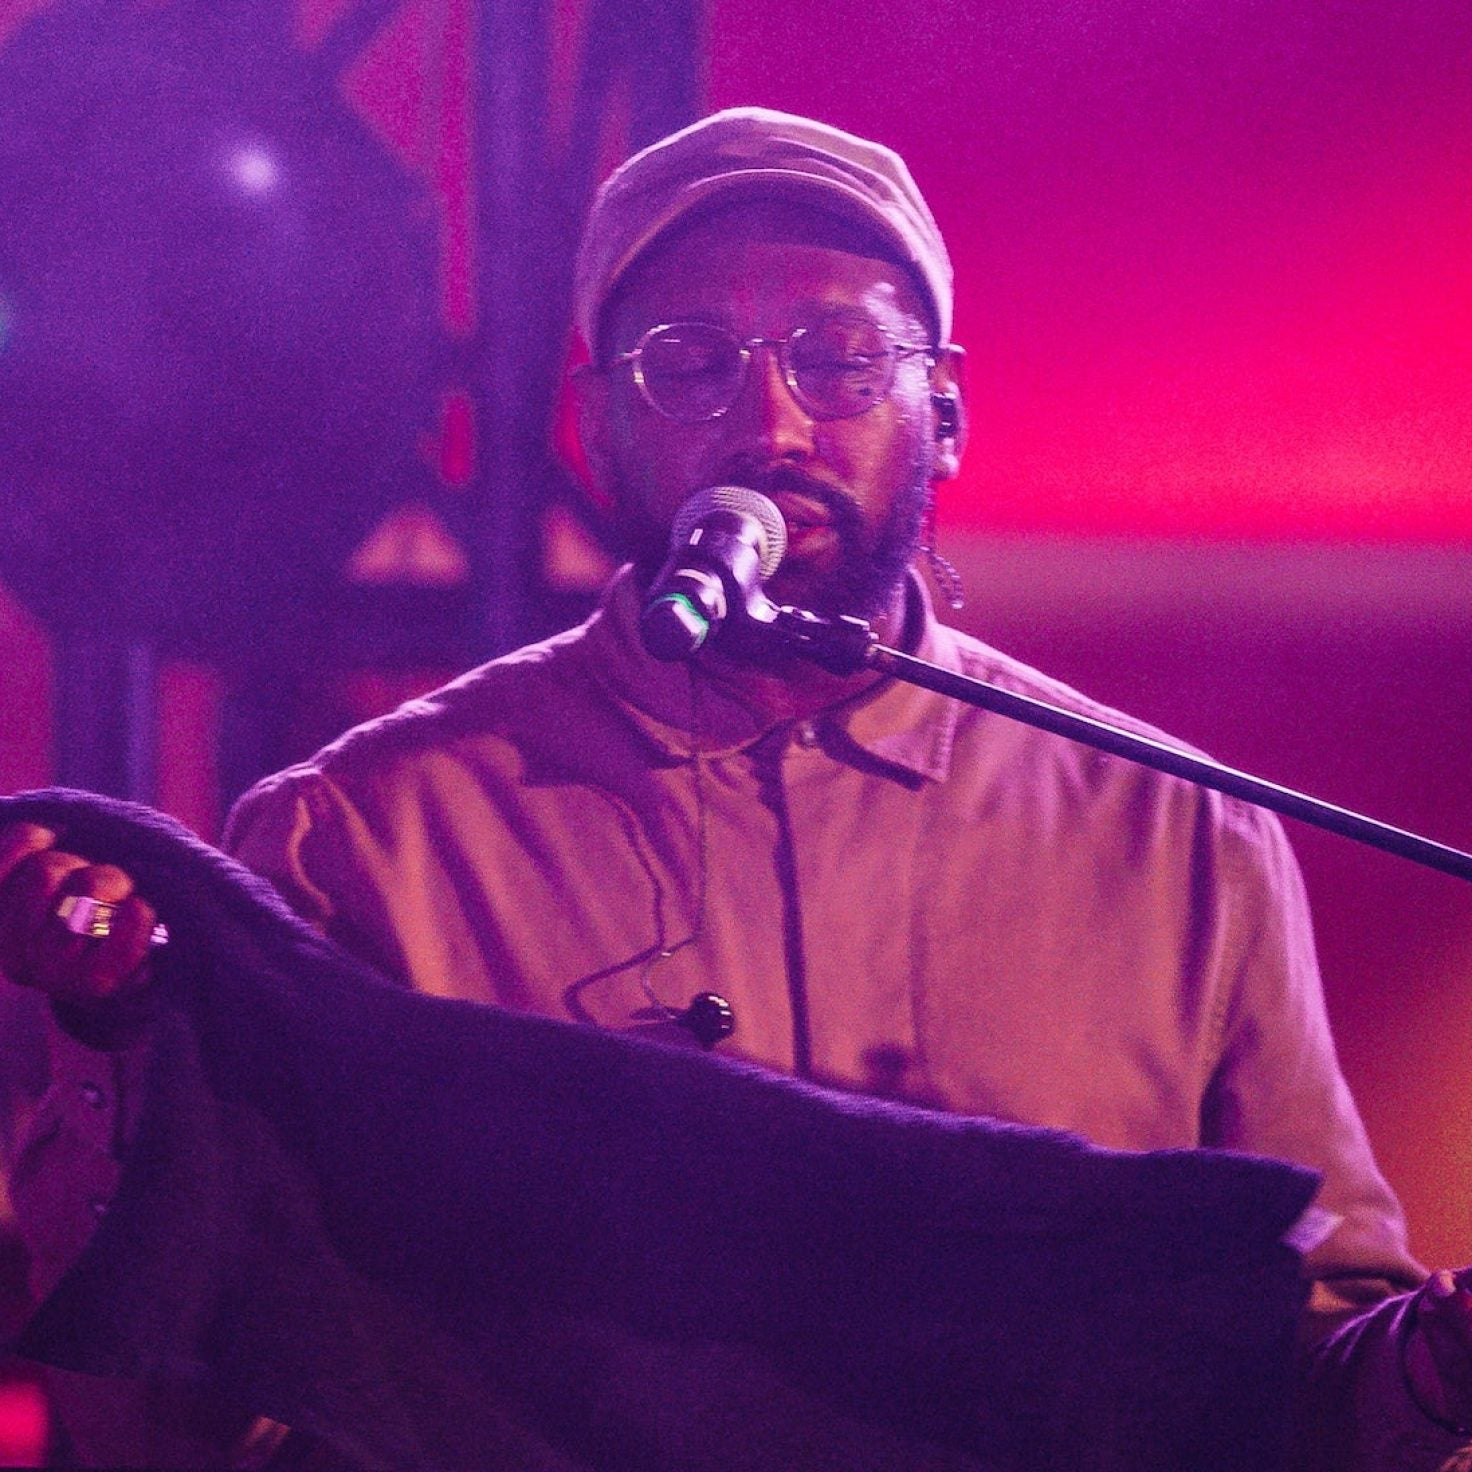 'Preacher's Kids' PJ Morton and Ro James Discuss How Religion Impacted Their Music